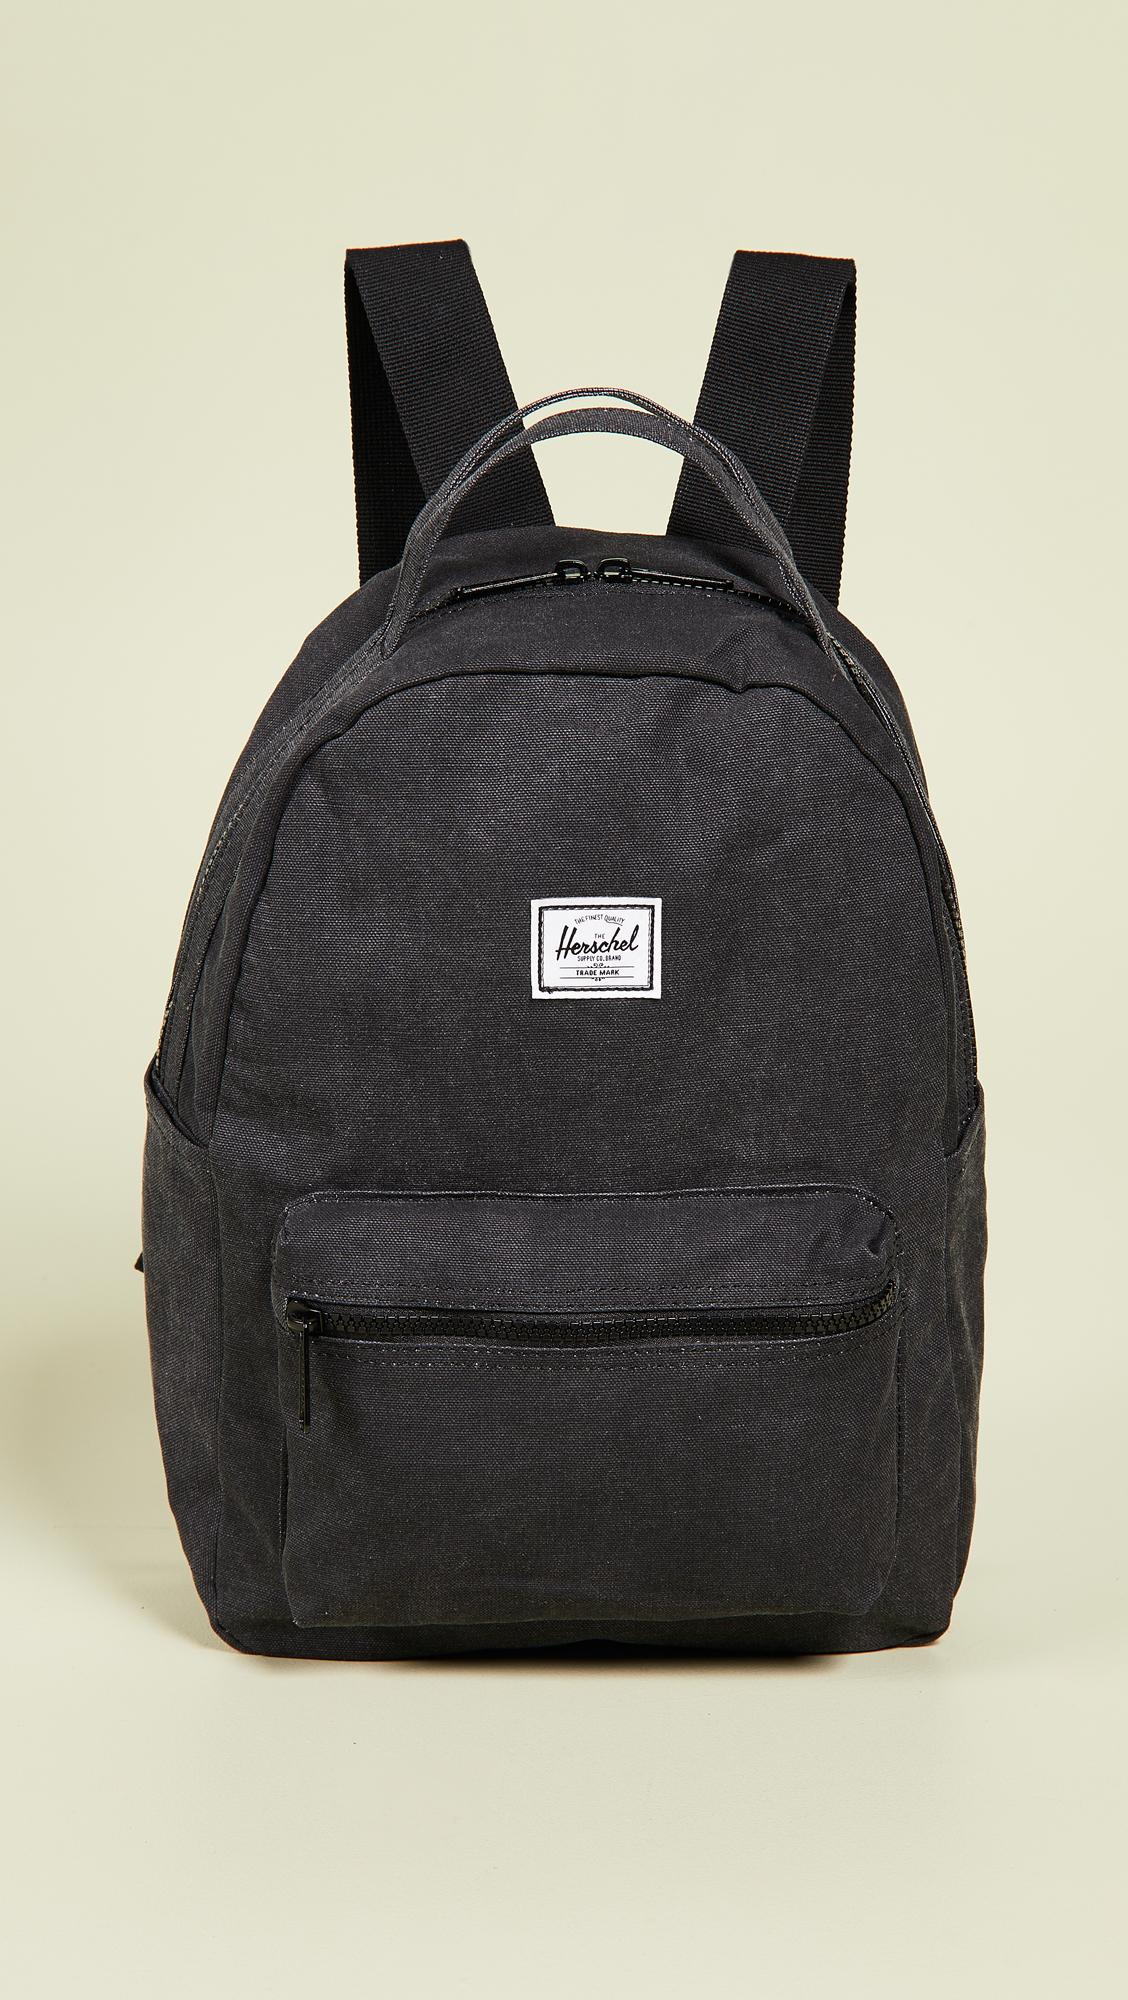 a575c00239 Lyst - Herschel Supply Co. Nova Small Backpack in Black - Save 2%